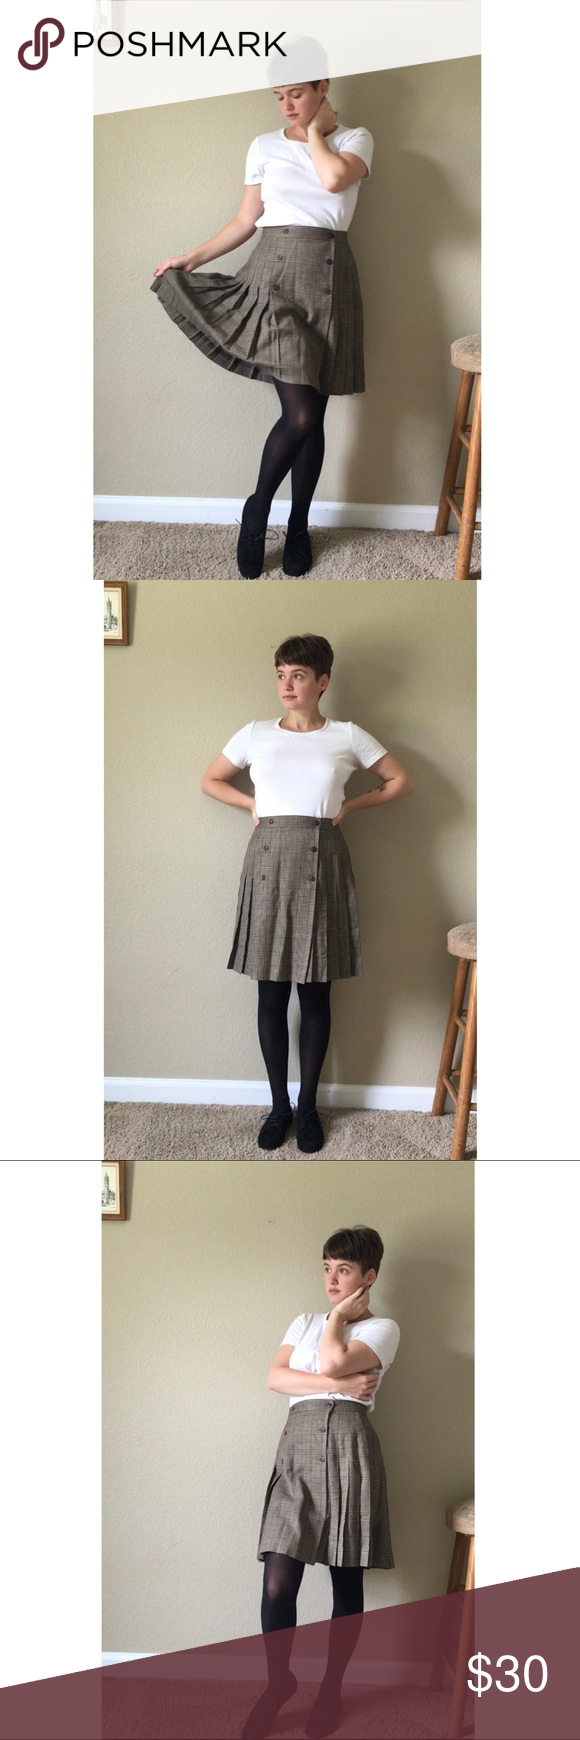 Vintage school girl skirt Vintage pleated mini school girl skirt in excellent condition ❤️ I'm 5'2 for reference and the waist can fit 24 or 25. NOT AA just using for visibility American Apparel Skirts Mini